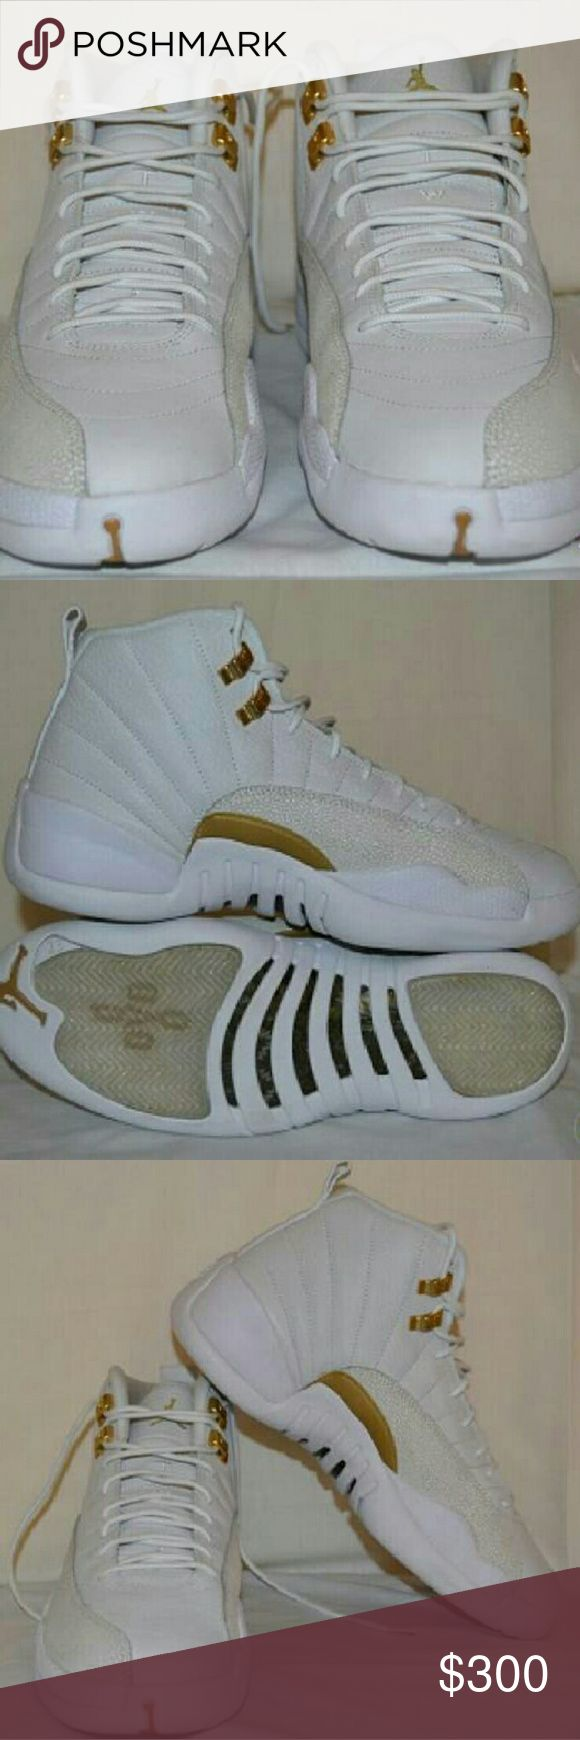 Jordan 12's OVO LIMITED EDITION New, available in all sizes  Feel free to contact me if you have any questions Jordan Shoes Athletic Shoes